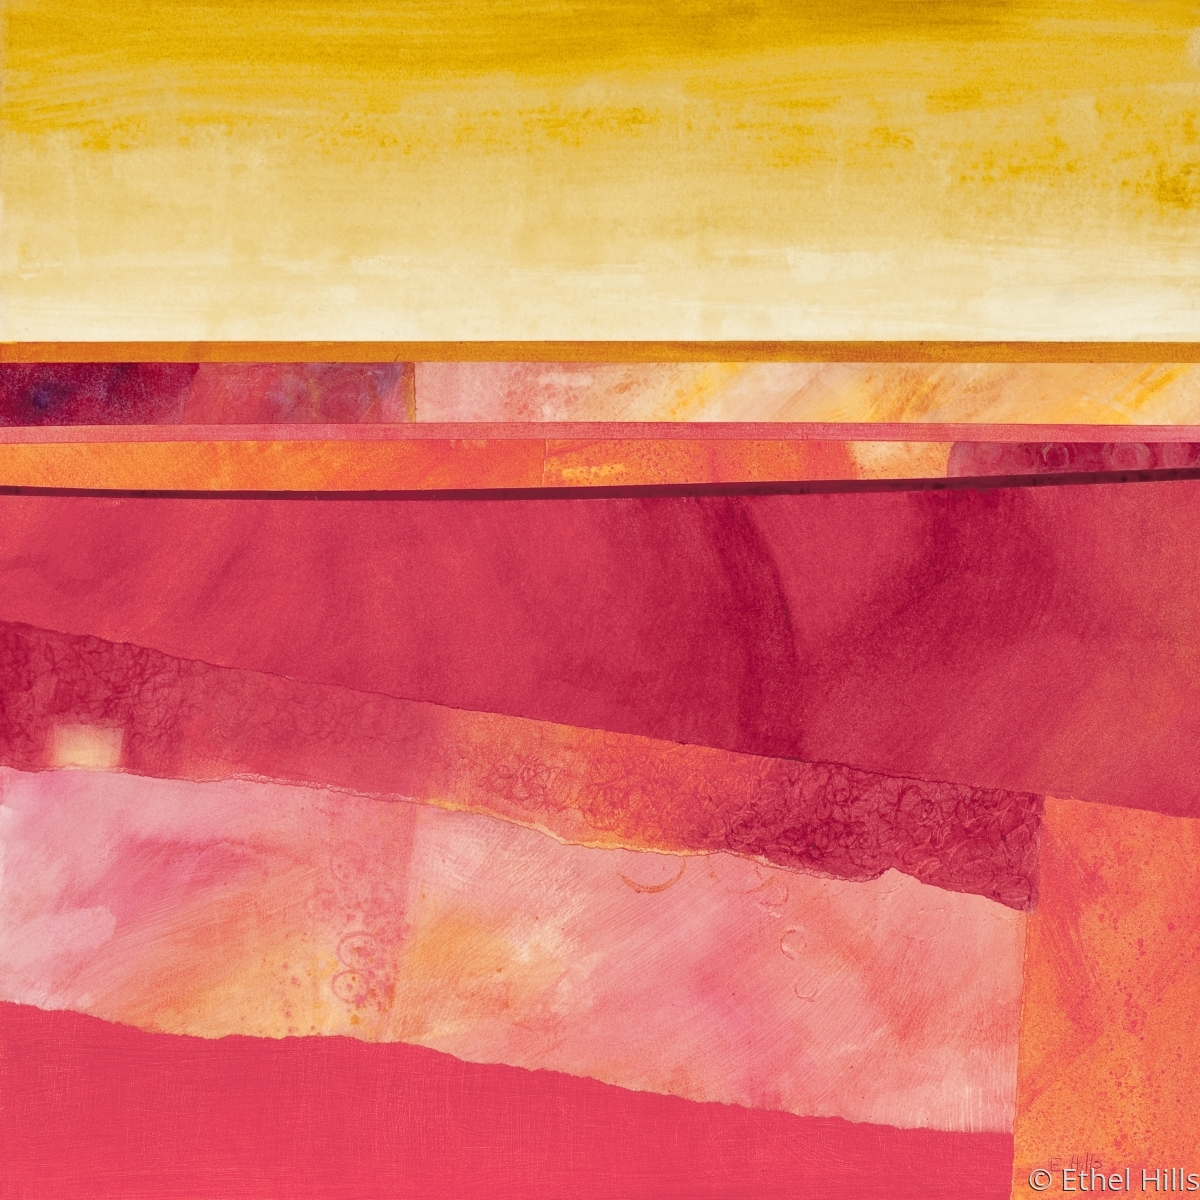 """Ethel Hills - """"Rhapsody"""" Abstract landscape painting in pinks, reds and yellows.  (large view)"""